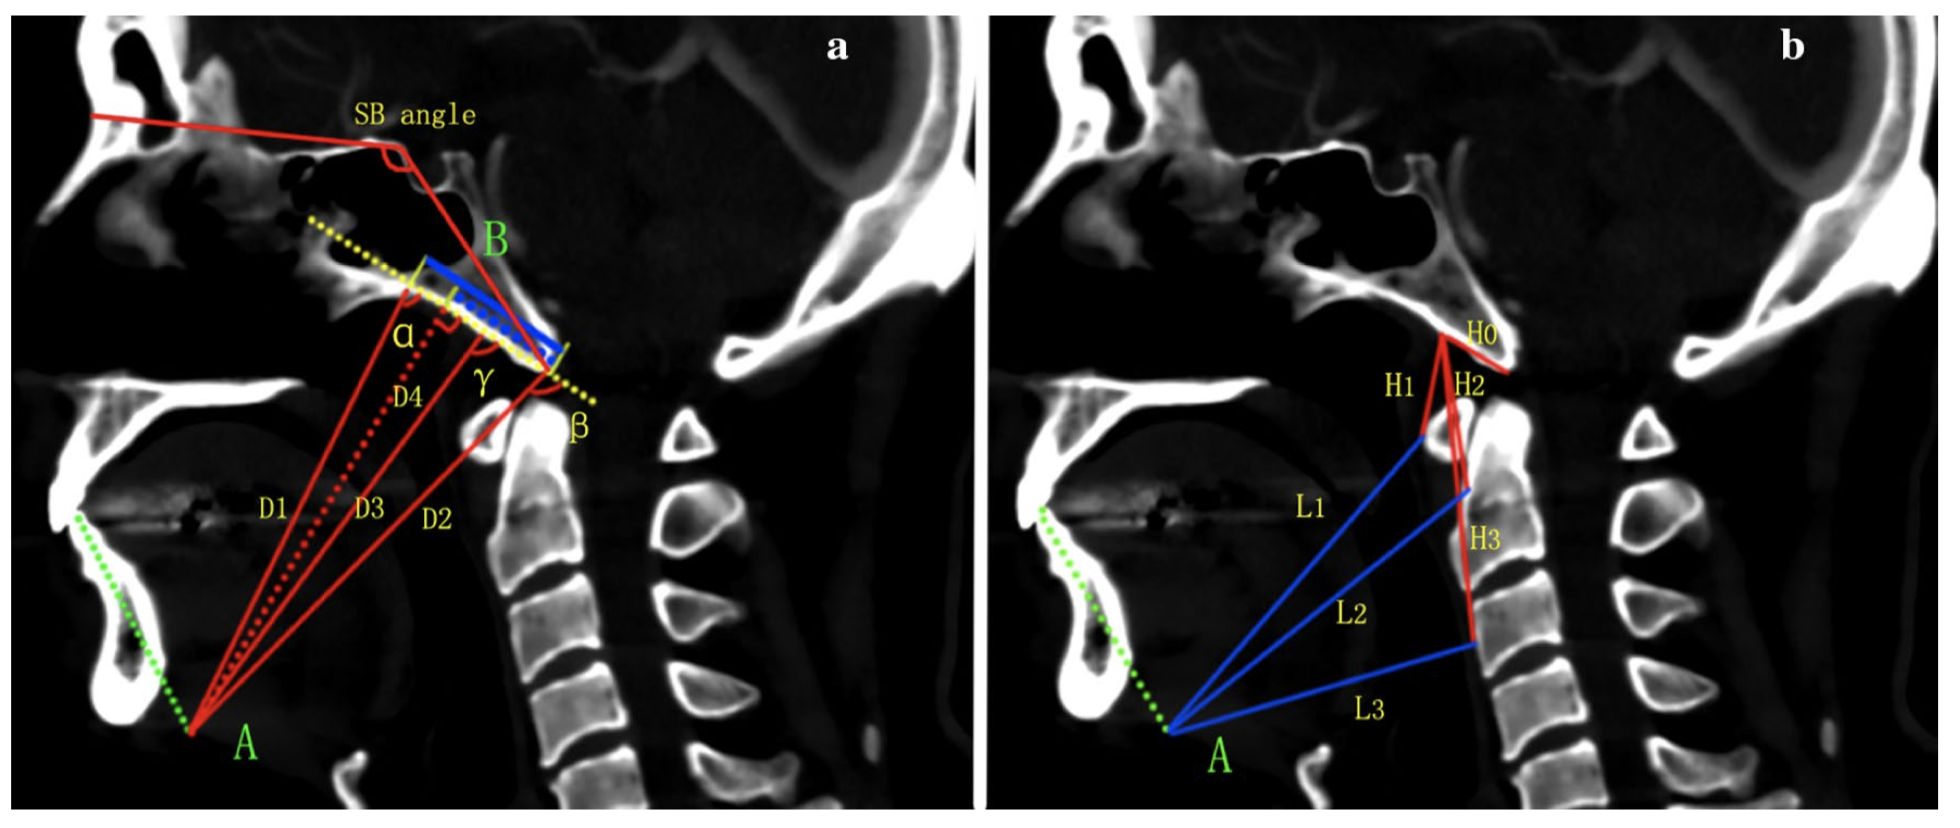 Clival screw and plate fixation by the transoral approach for the craniovertebral junction